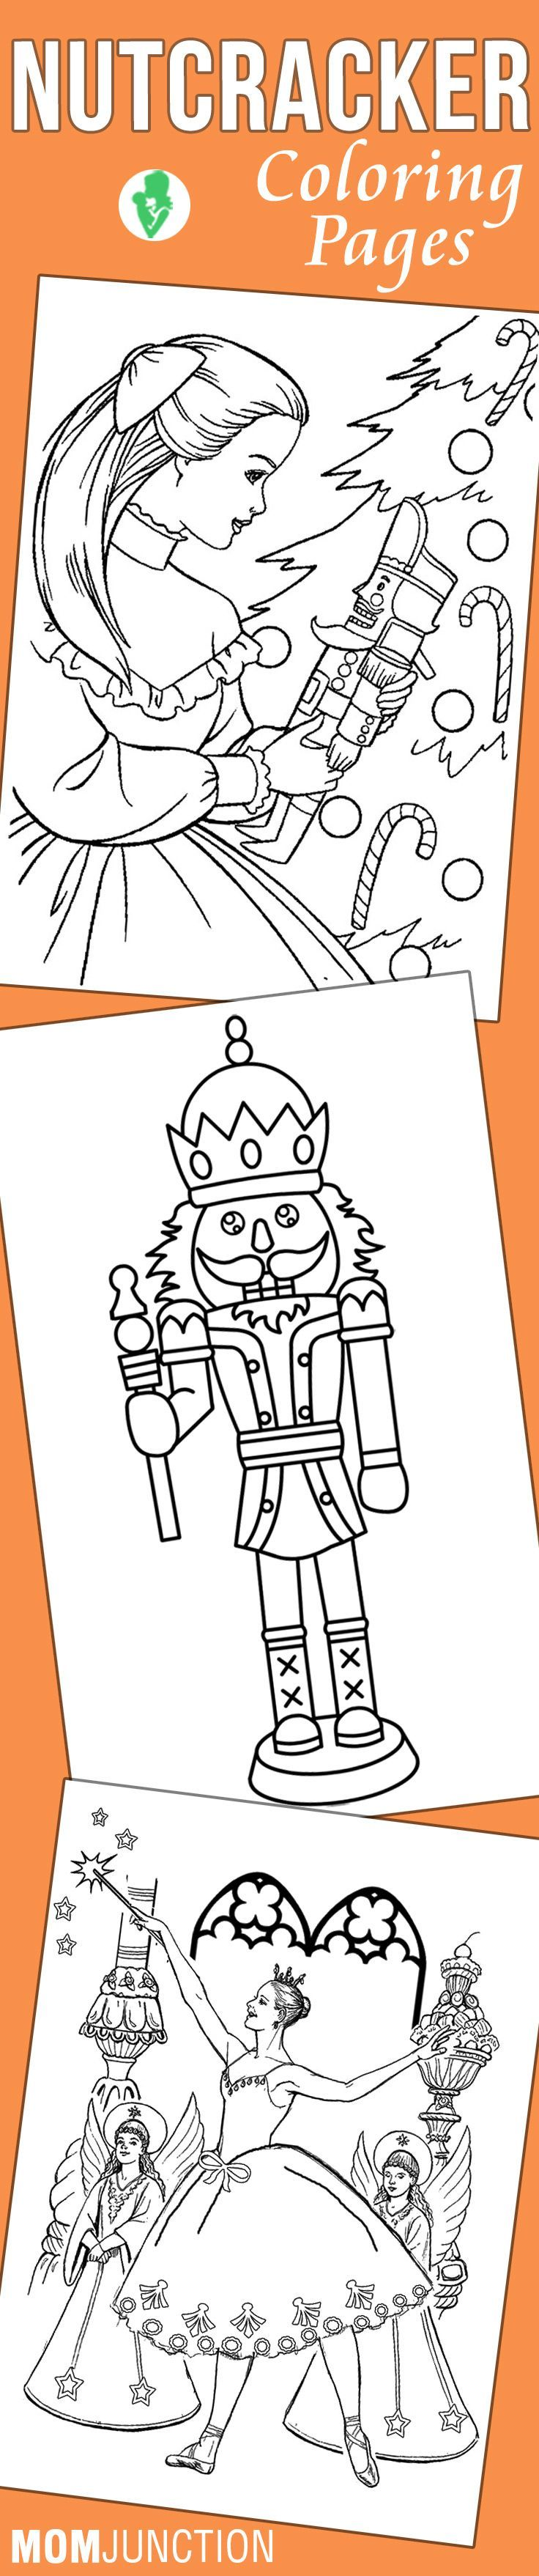 9 best nutcracker ballet coloring pages images on pinterest